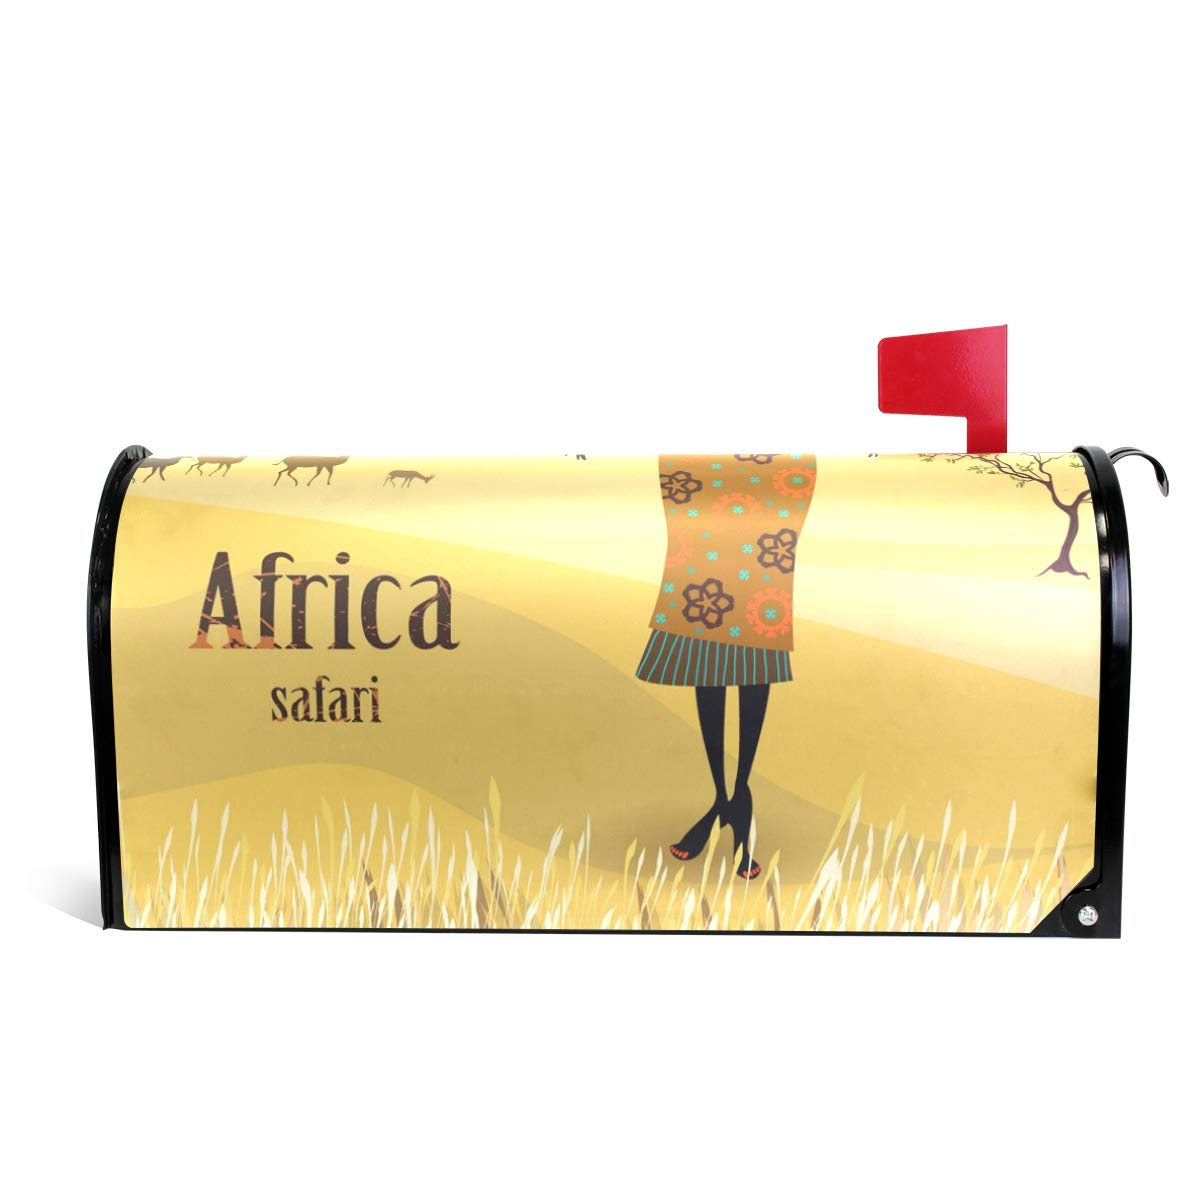 MAPOLO African Women in Mountain Landscape Magnetic Mailbox Cover Oversized